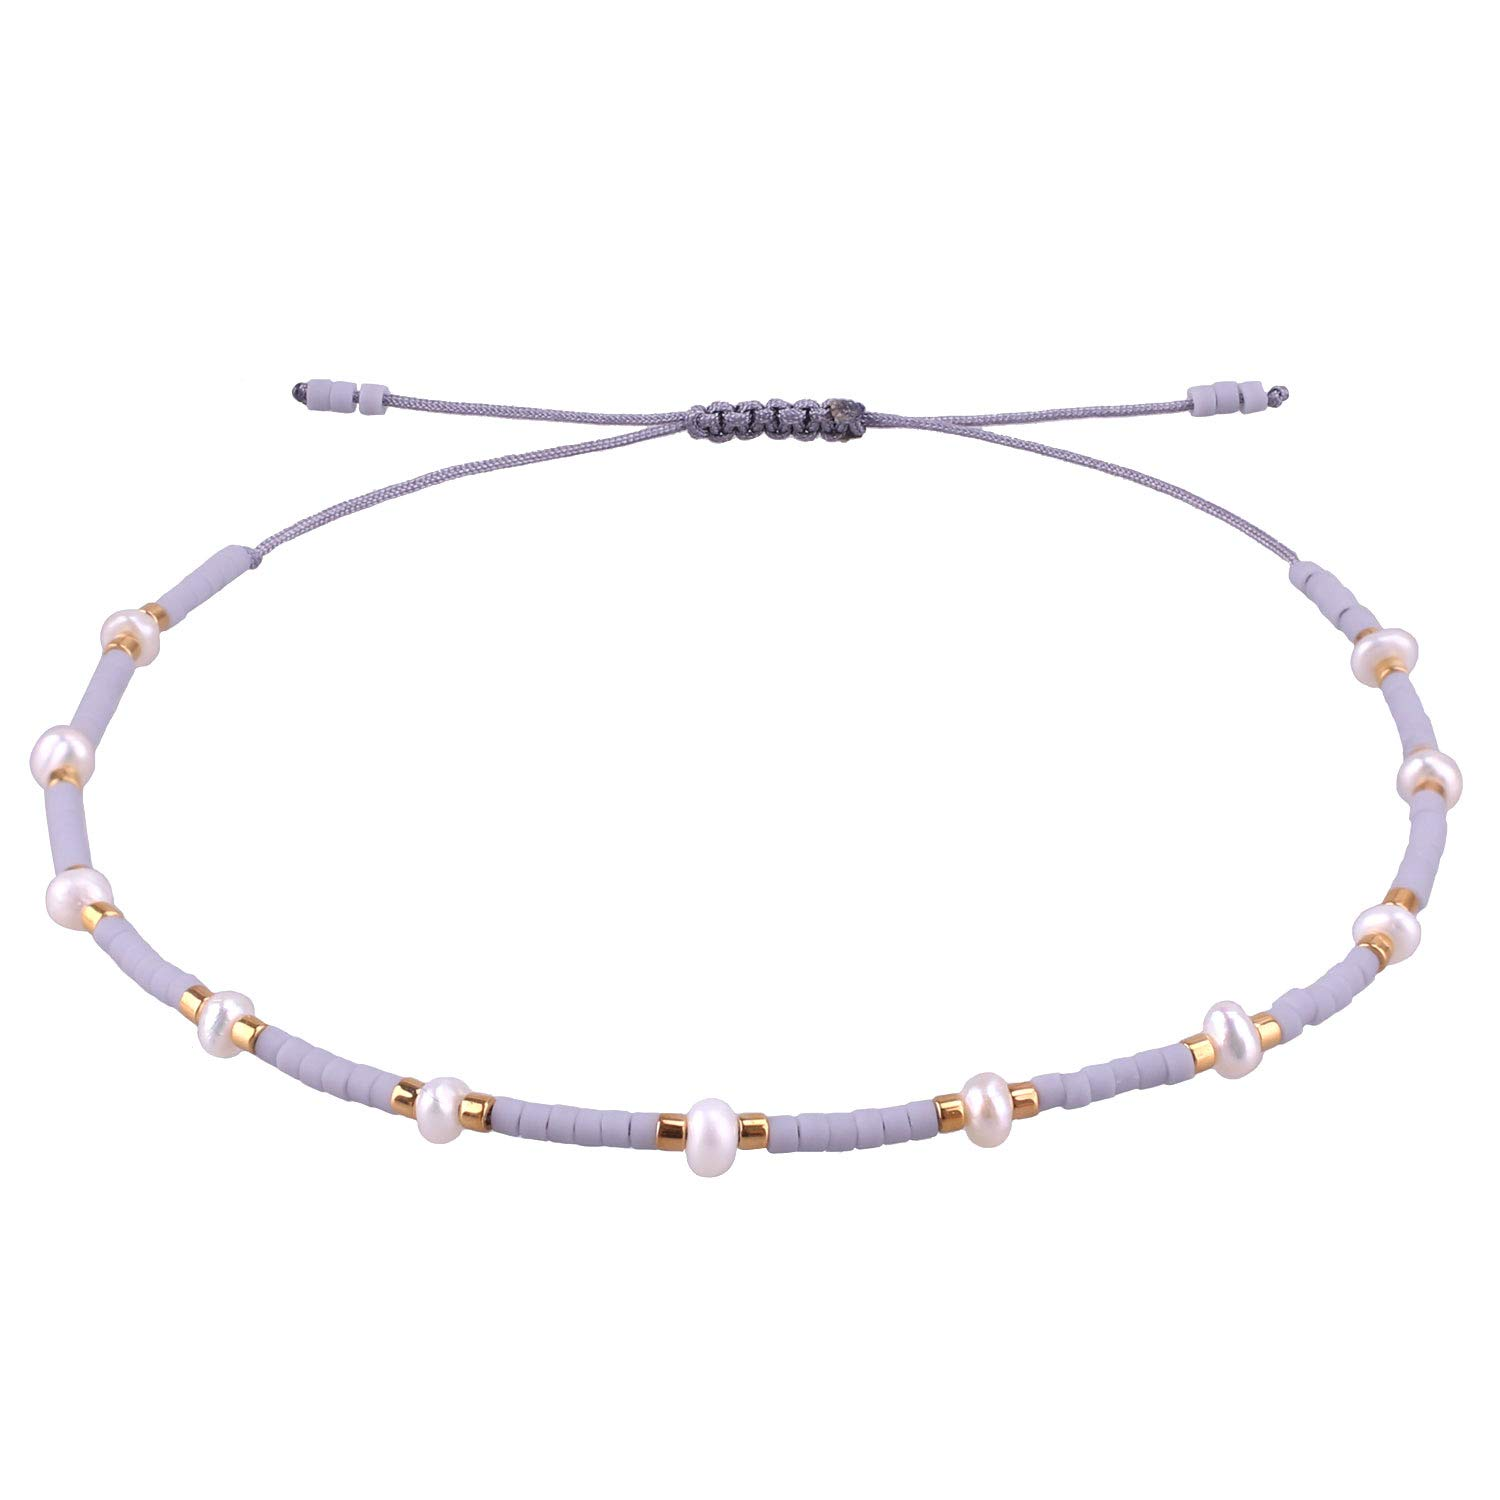 KELITCH Color Mixed Shell Seed Beads Strand Bracelet Hand Woven Fashion Jewelry Bangles (Grey L)